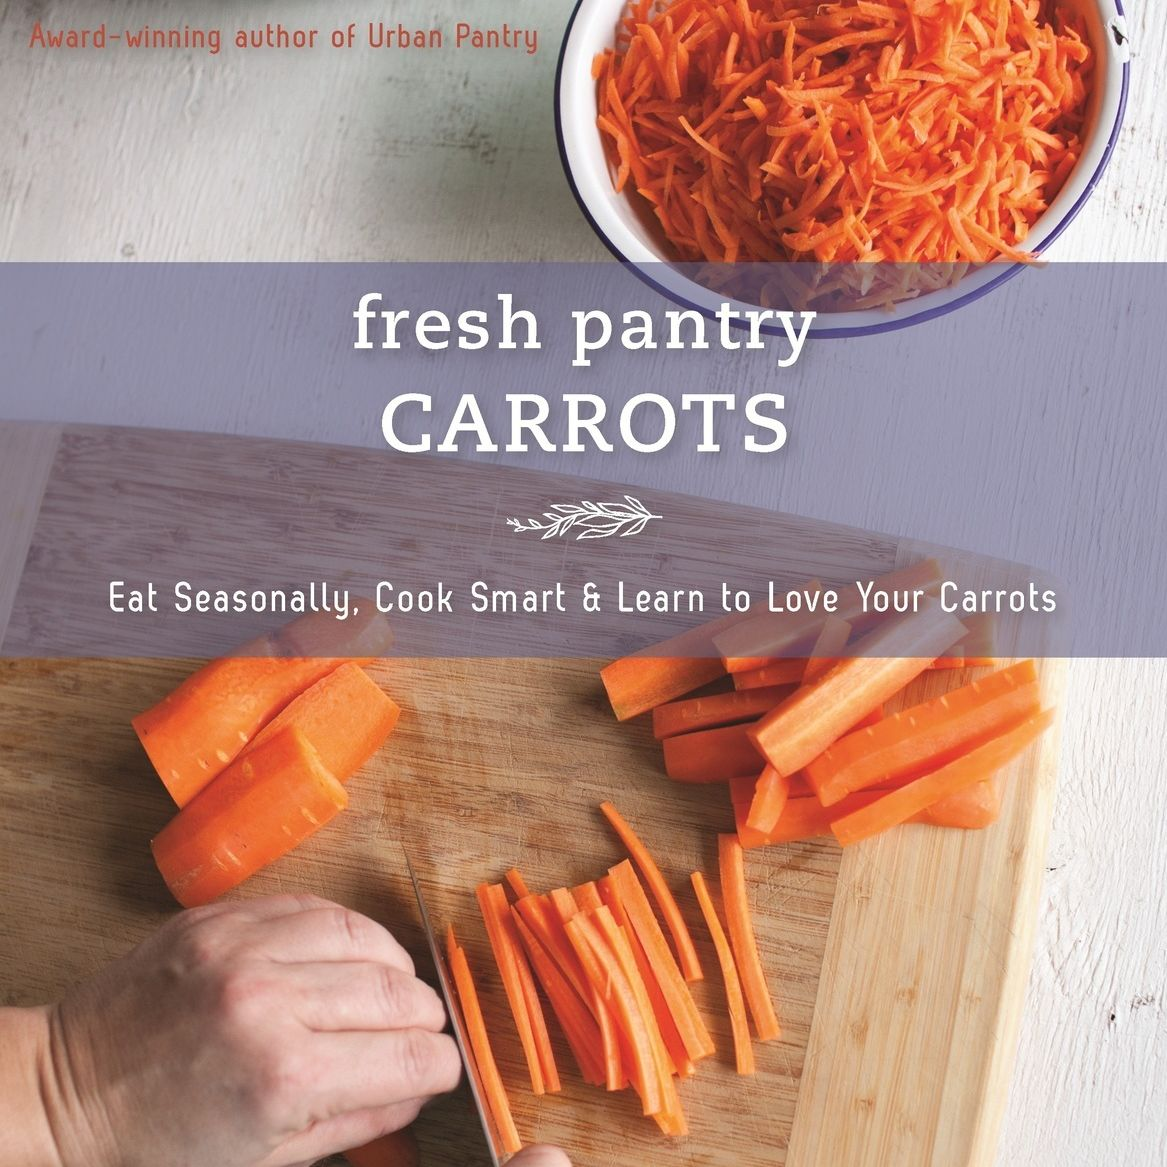 March carrots fresh pantry copy hw7e6i